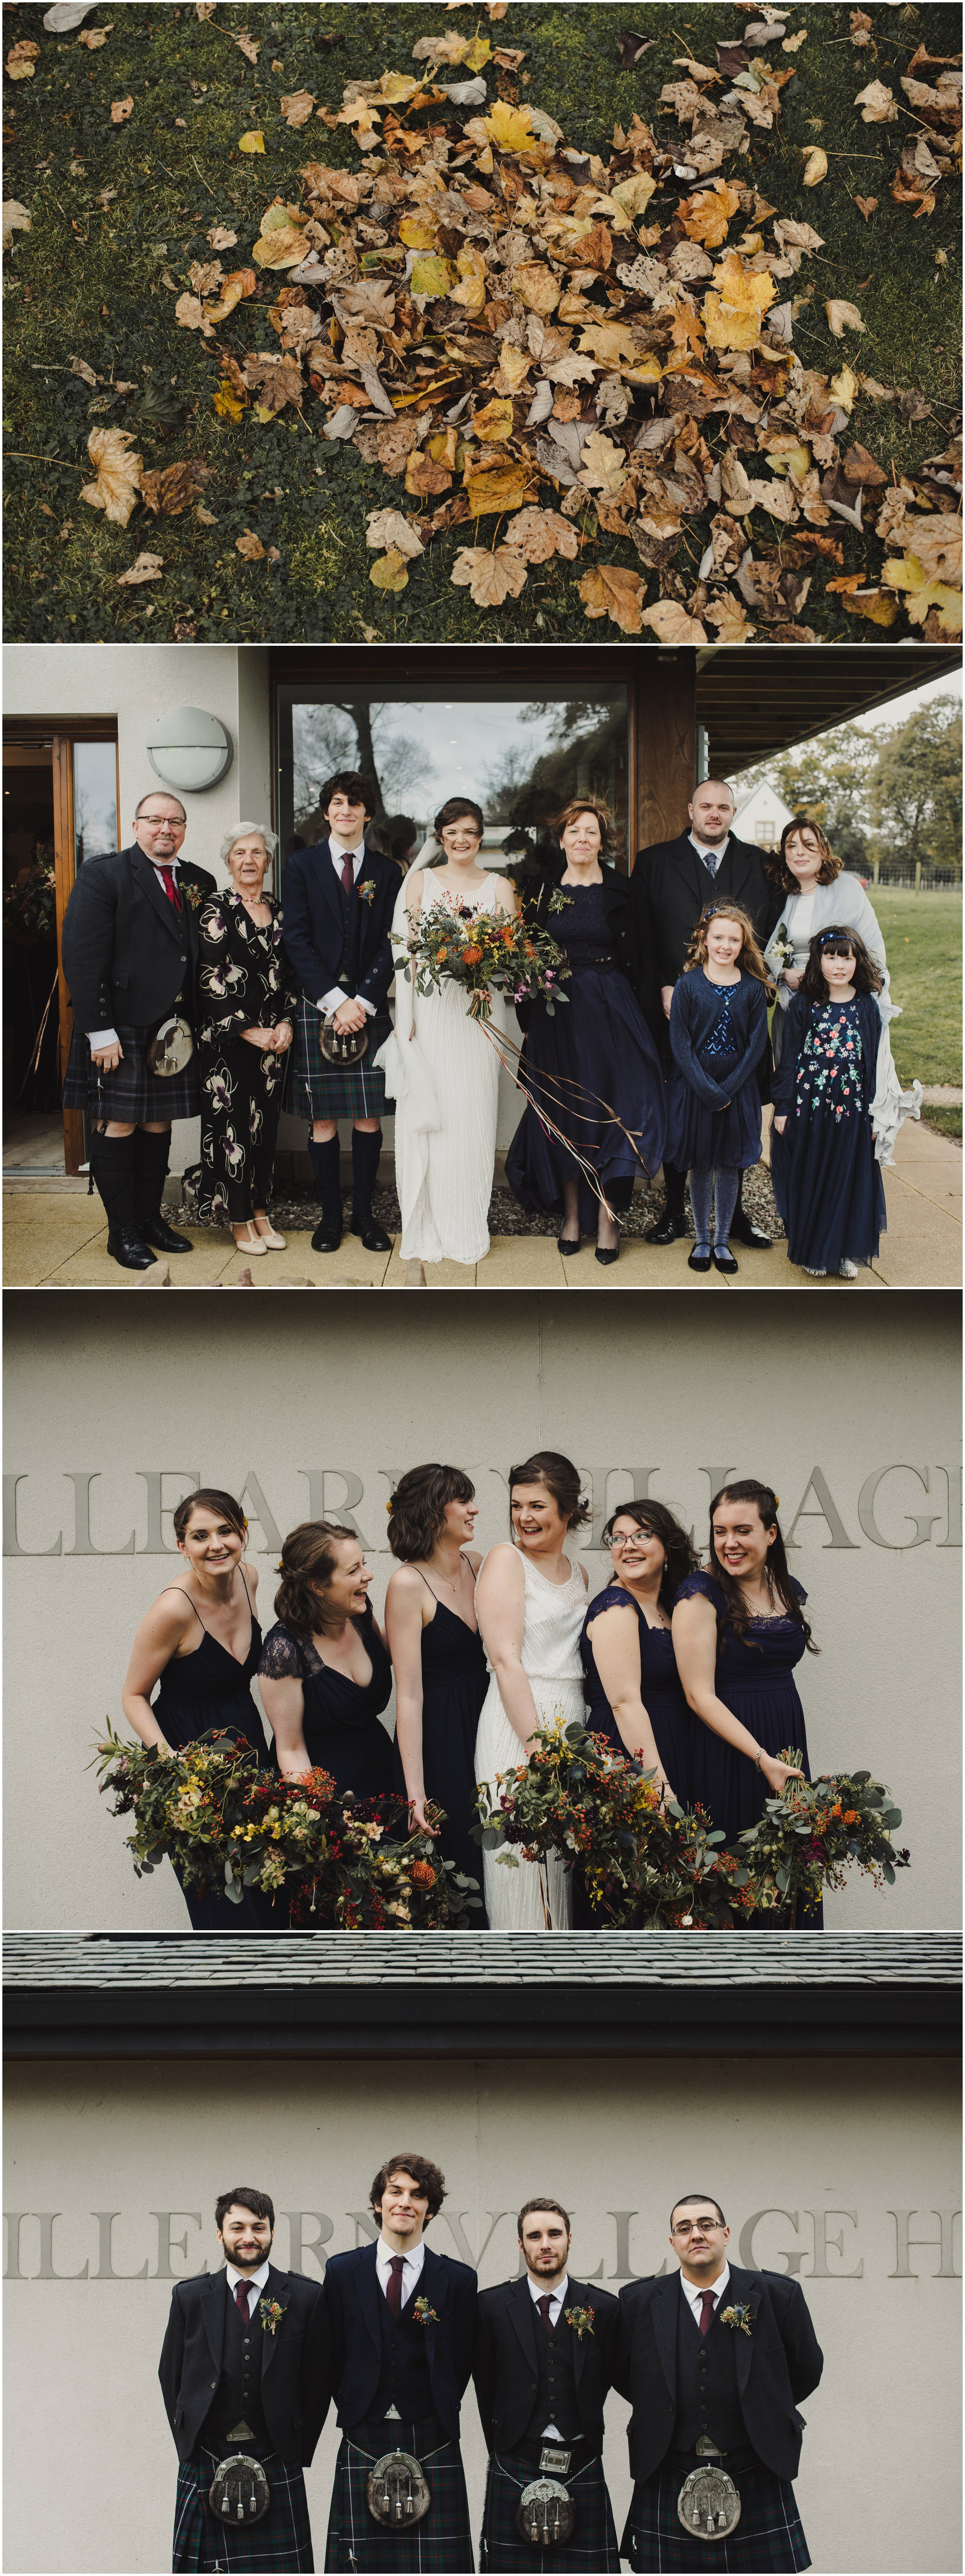 killearn village hall wedding